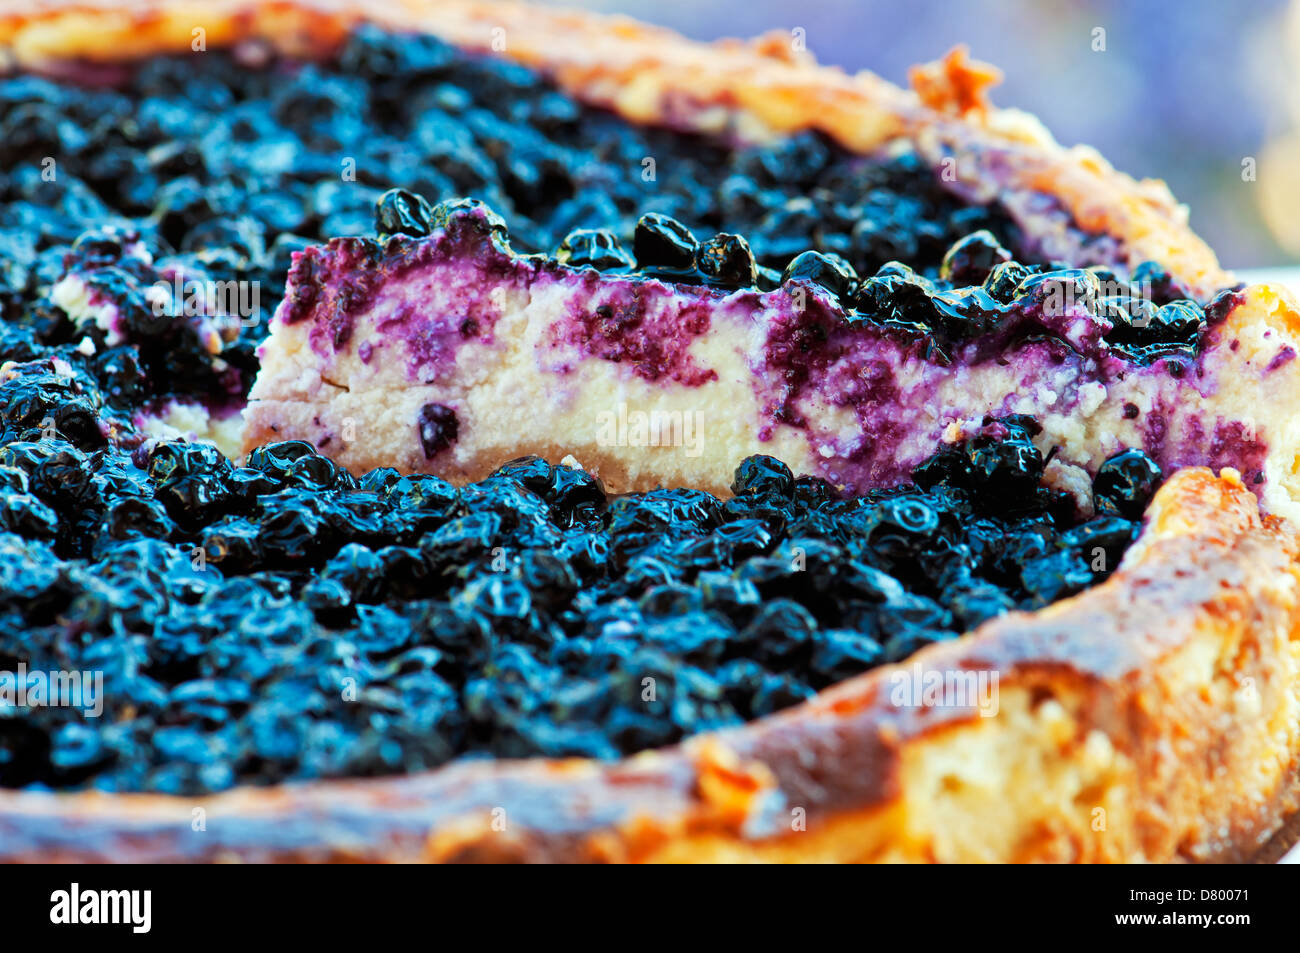 Cheese cake with blueberry top - Stock Image